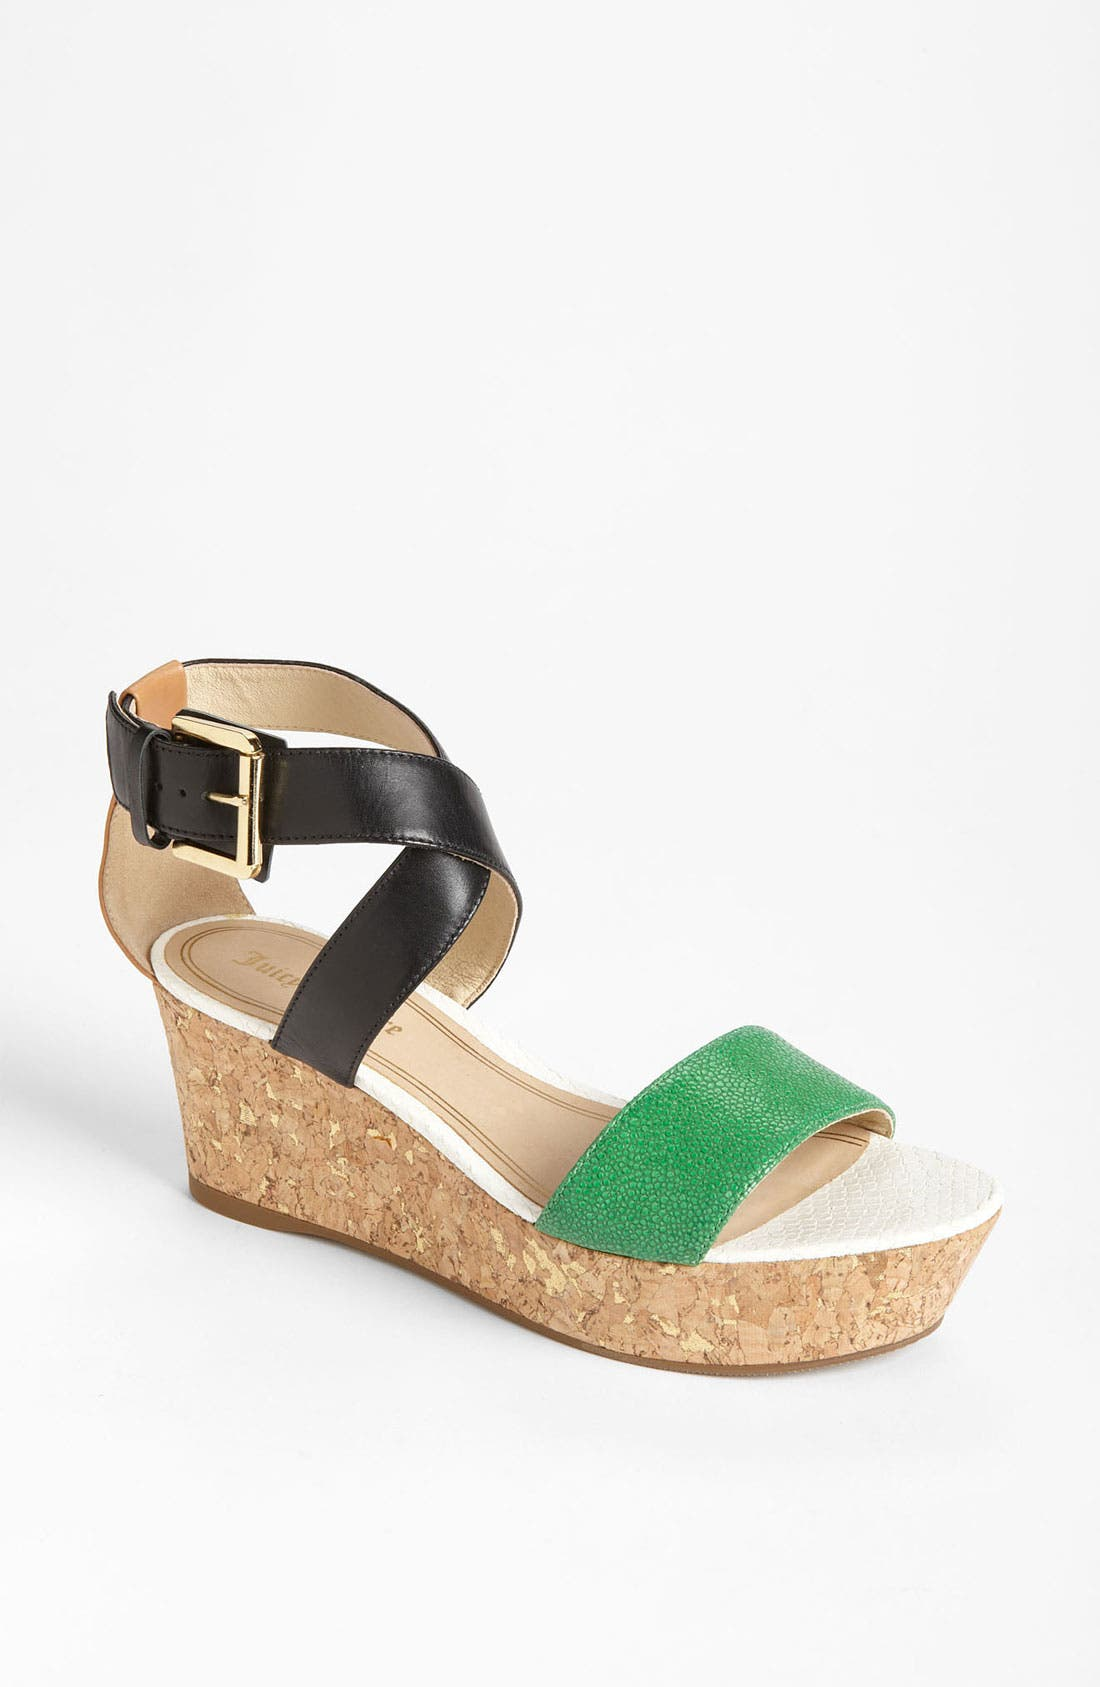 Alternate Image 1 Selected - Juicy Couture 'Forrest' Sandal